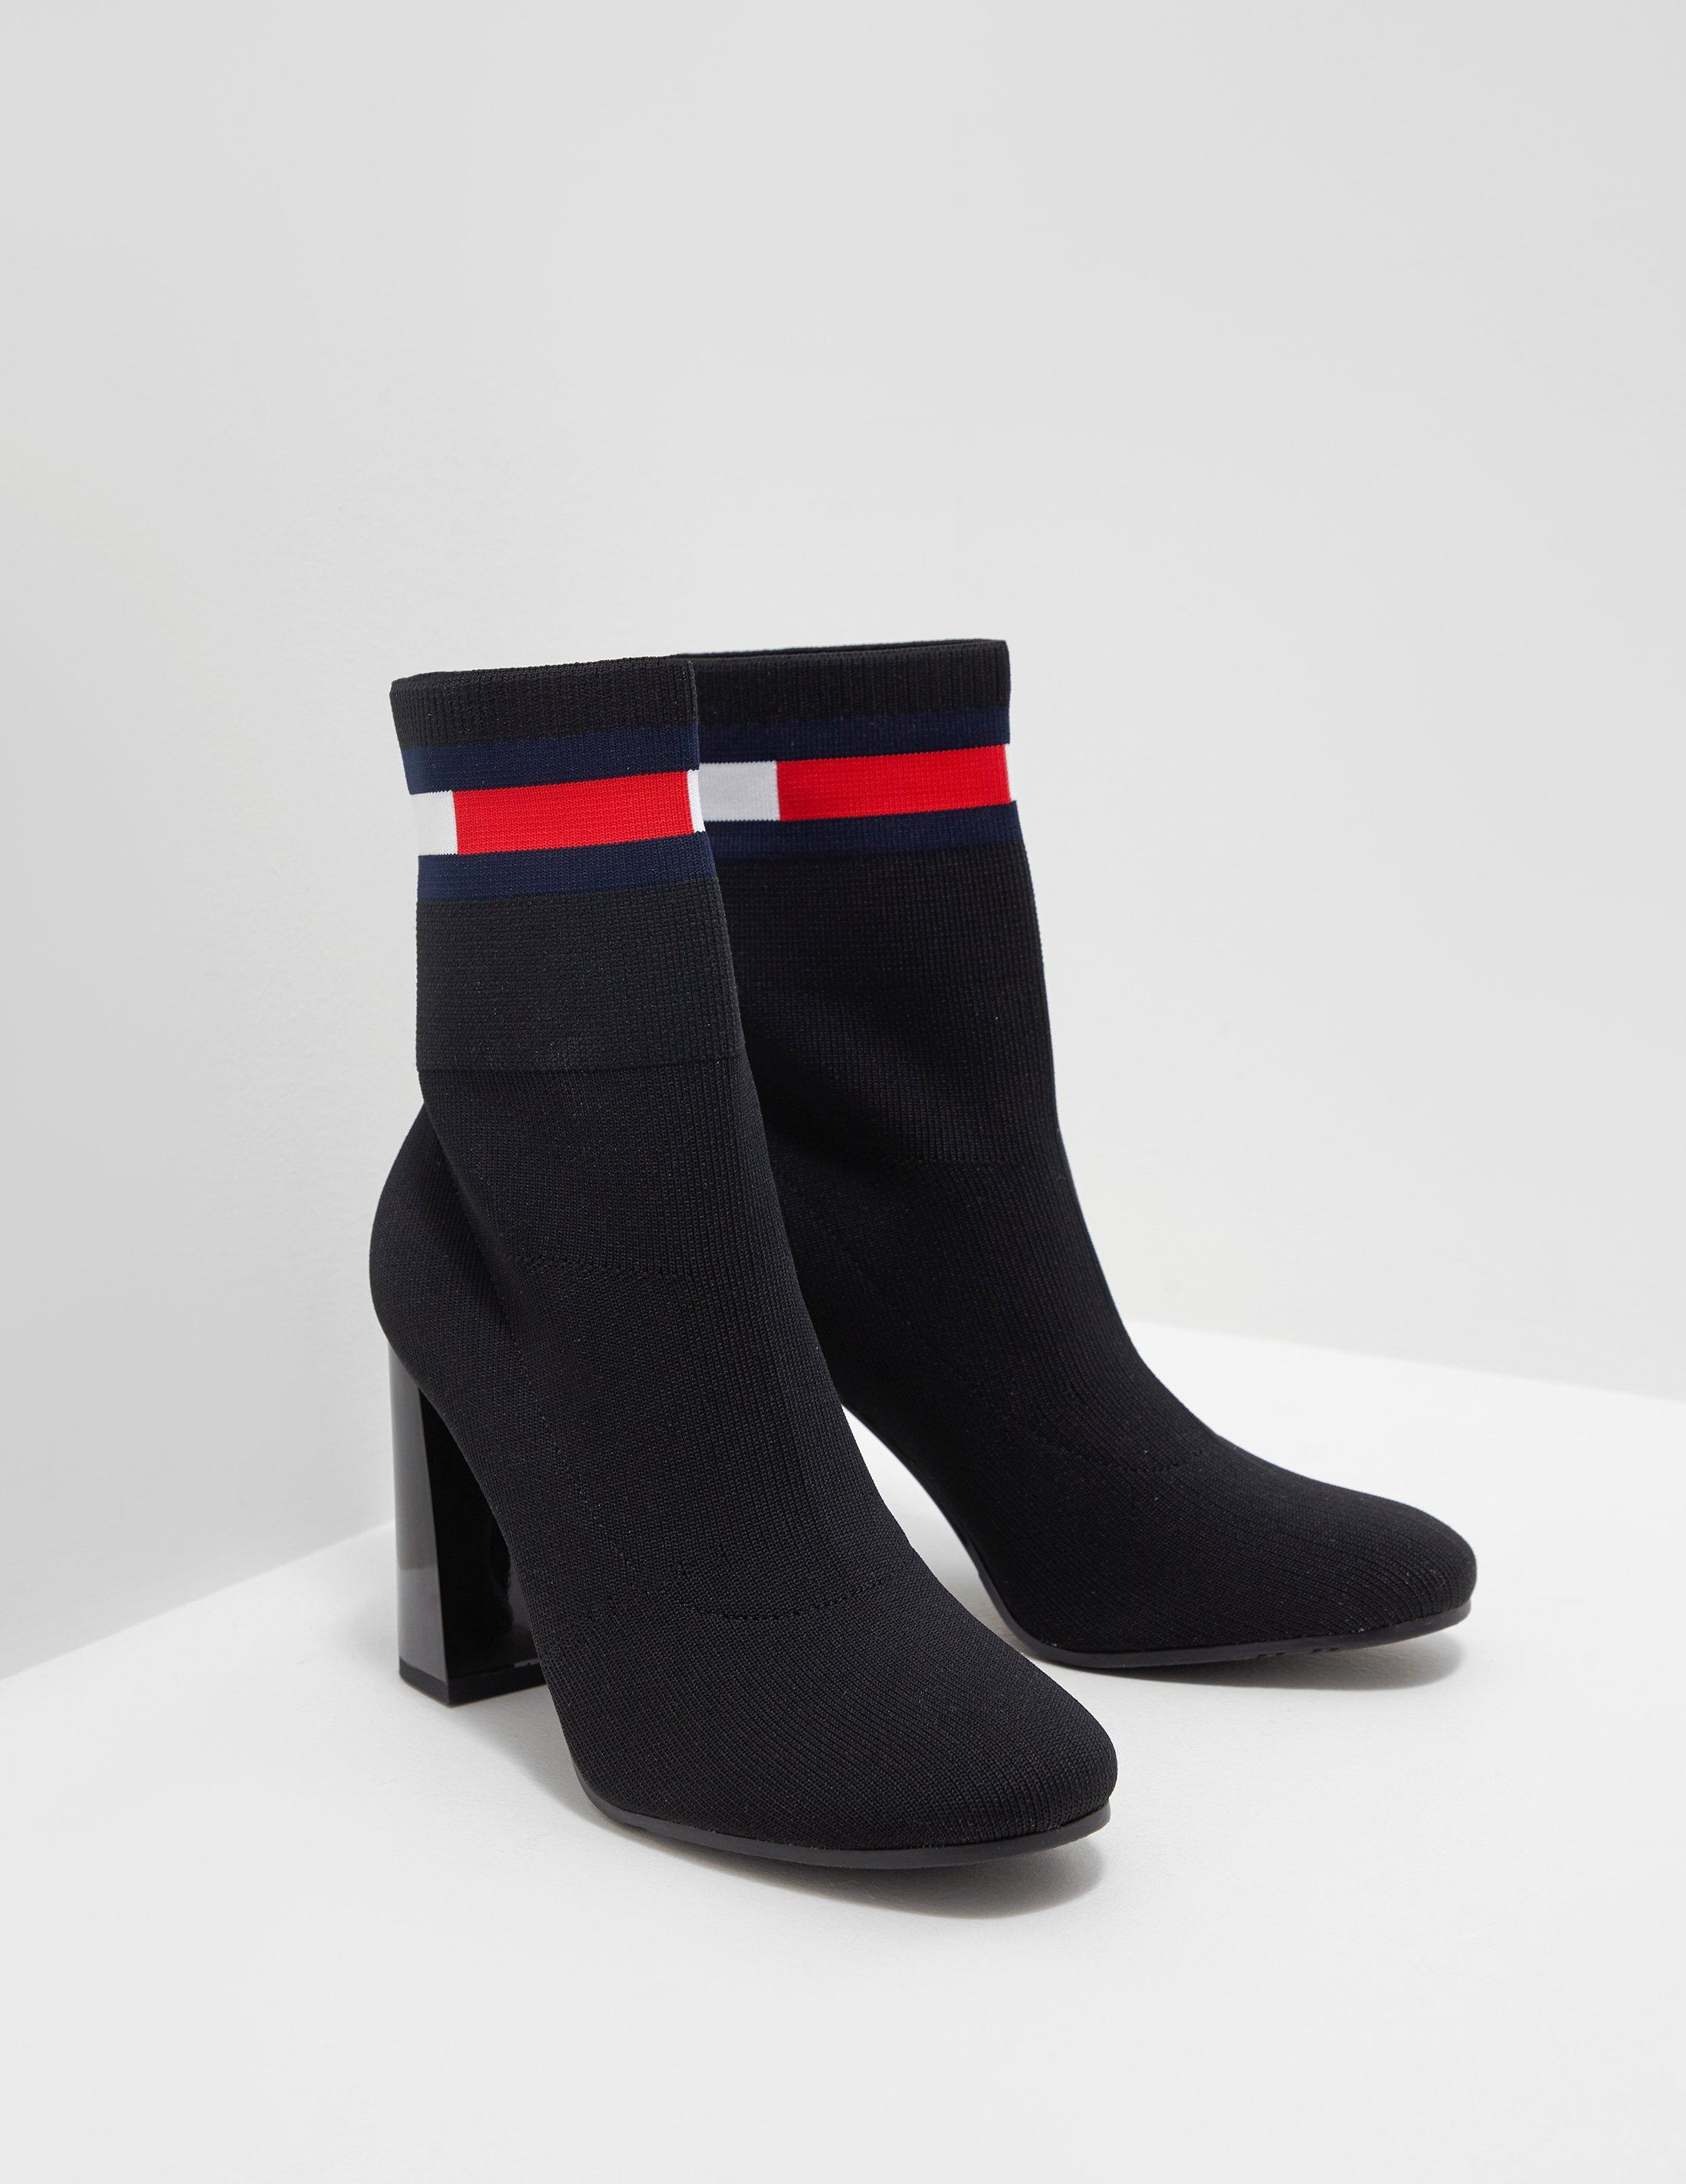 ed47b2326085 Tommy Hilfiger Flag Heeled Sock Boots in Black - Lyst